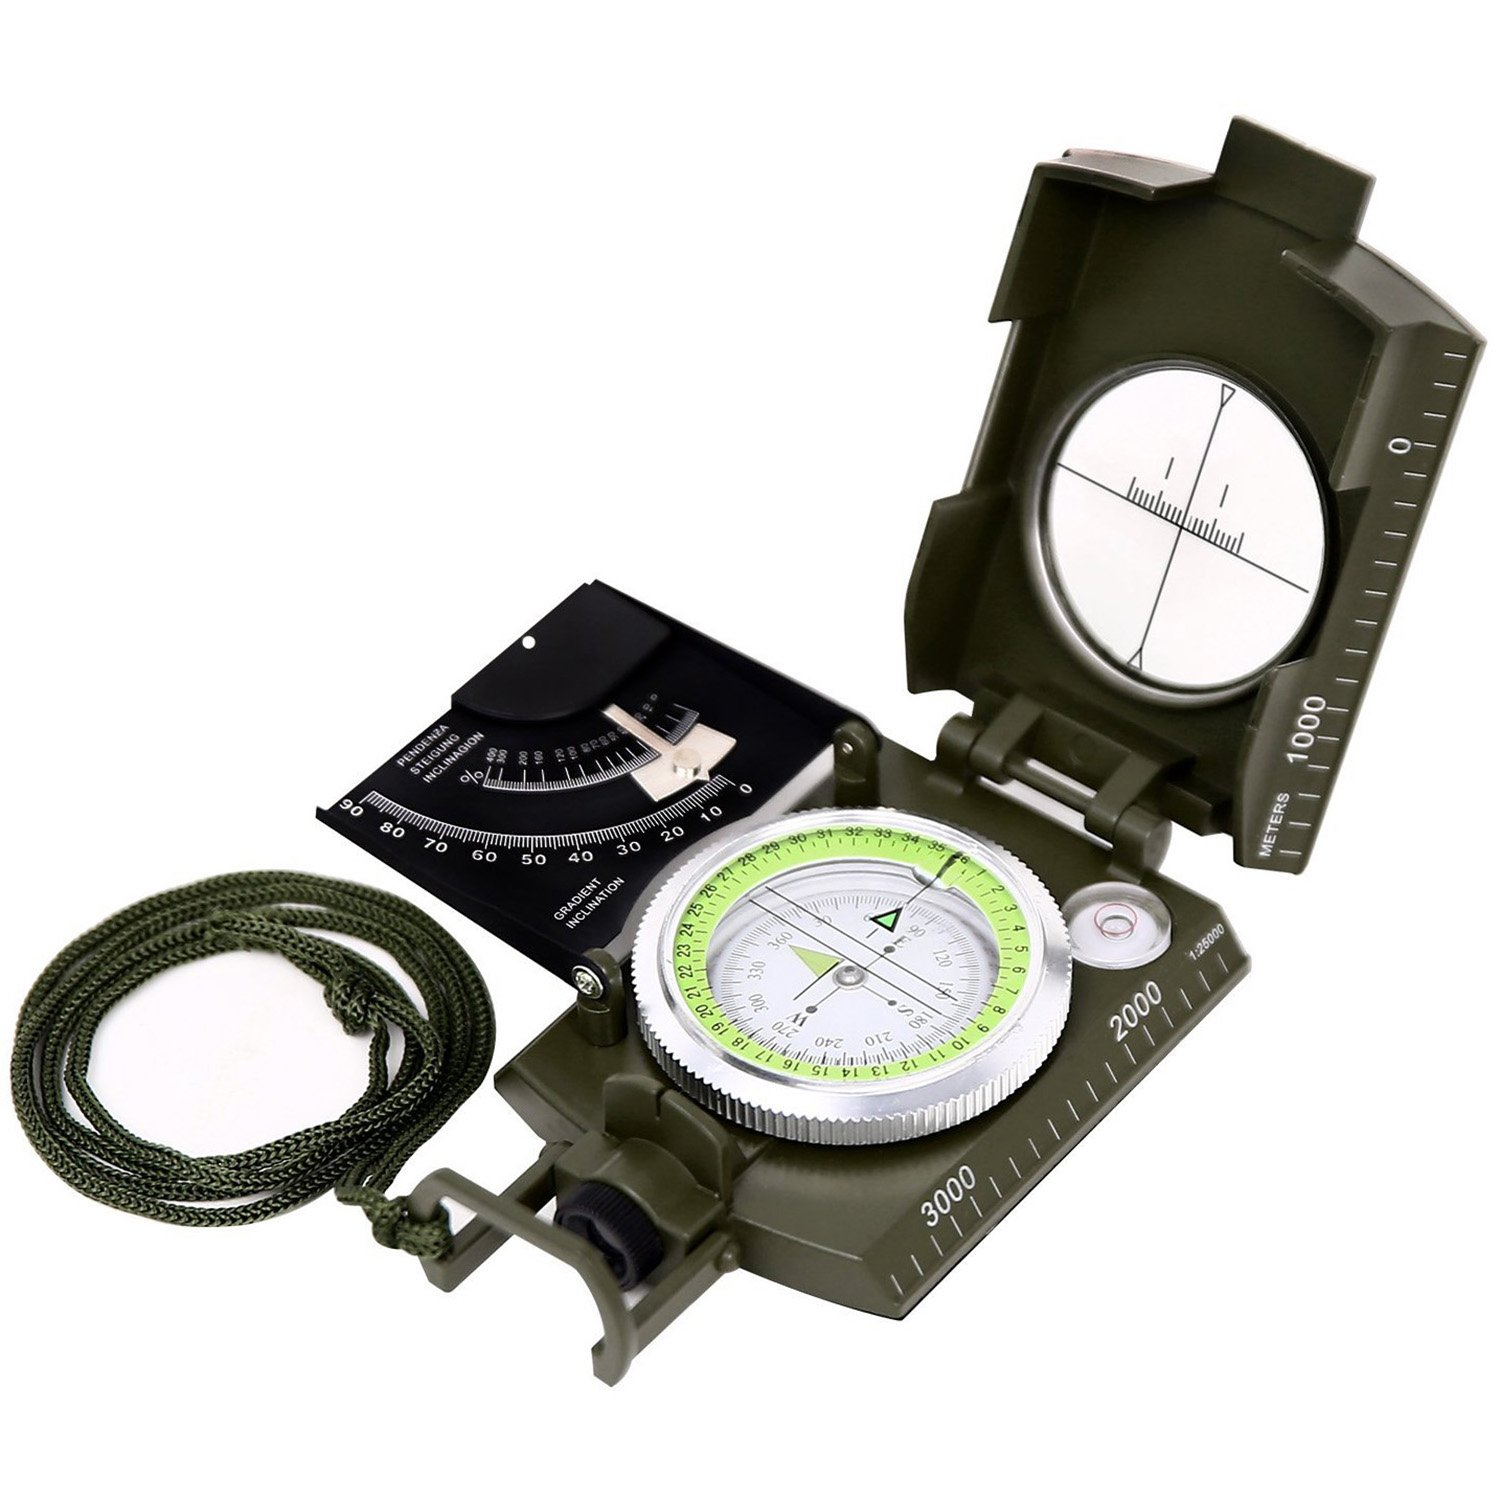 Sportneer Multifunctional Military Lensatic Sighting Compass with Inclinometer and Carrying Bag, Waterproof and Shakeproof, Army Green